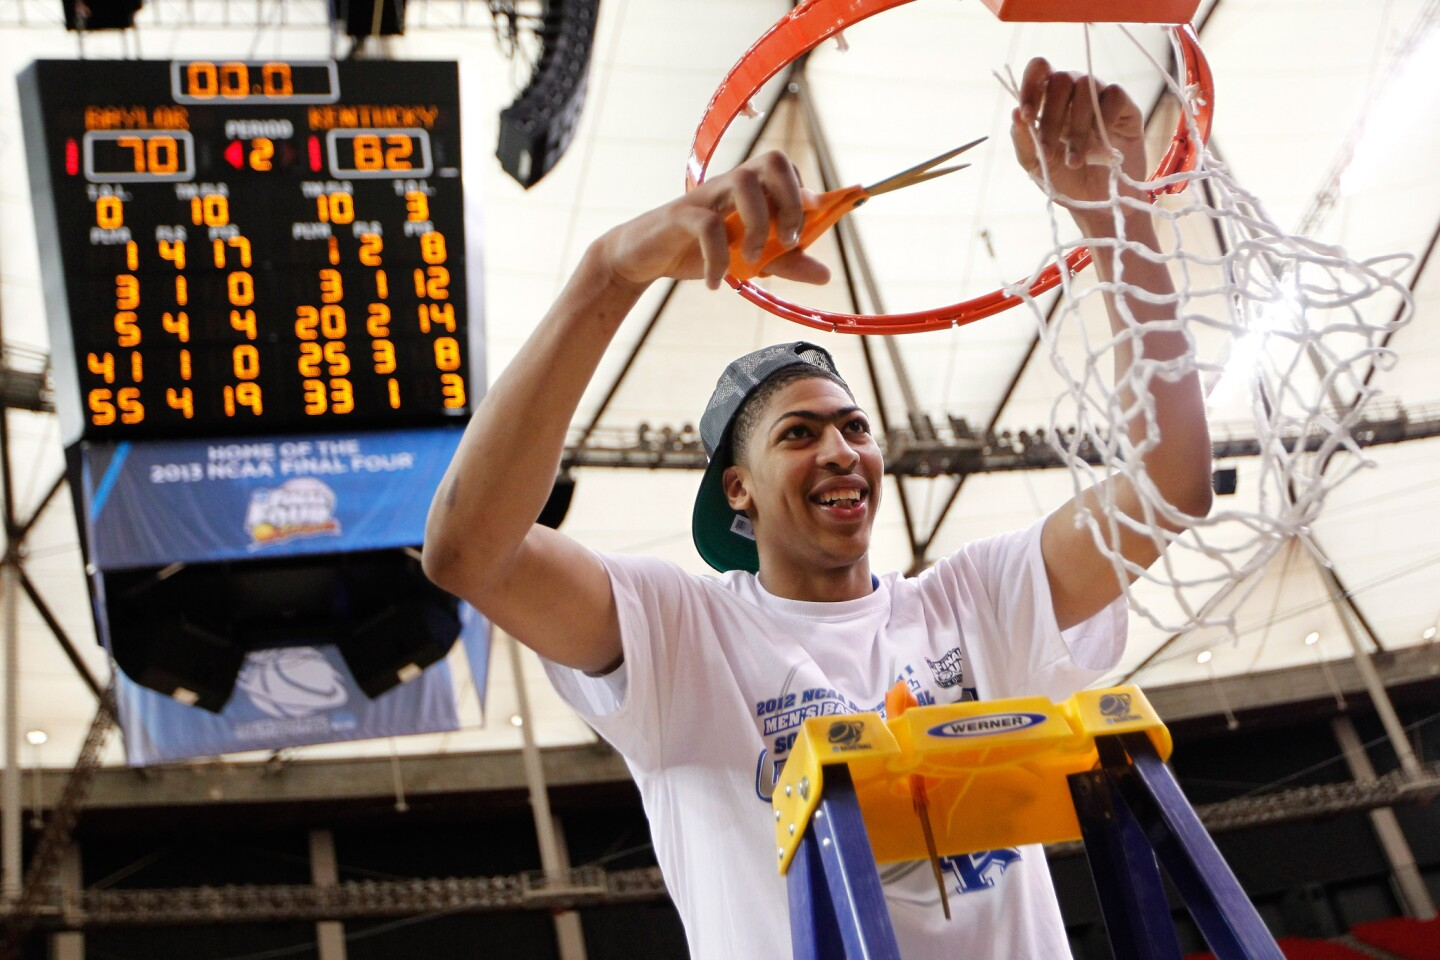 Anthony Davis cuts down the net after Kentucky defeated the Baylor 82-70 in the NCAA tournament South Regional final on March 25, 2012, in Atlanta.